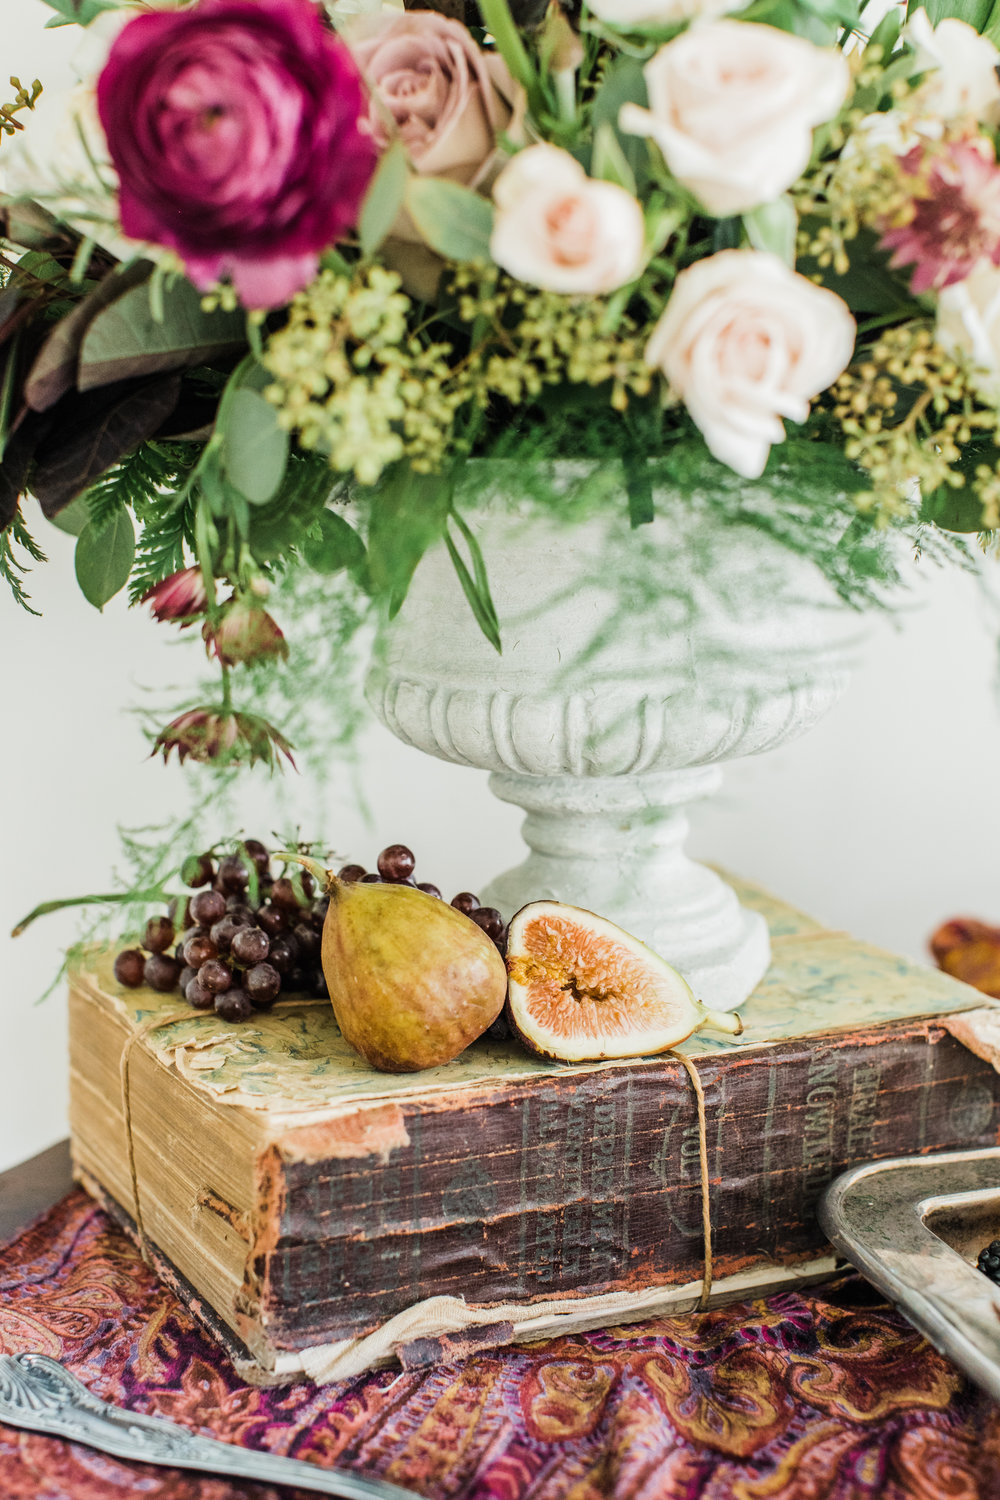 Texture close up: velvet, paper, fruit, floral, stone, metal. Styling by jennifer of {feather + oak}, photography by Sarah Sidwell Photography, florals by Emily Kennedy of Kennedy Occasions.